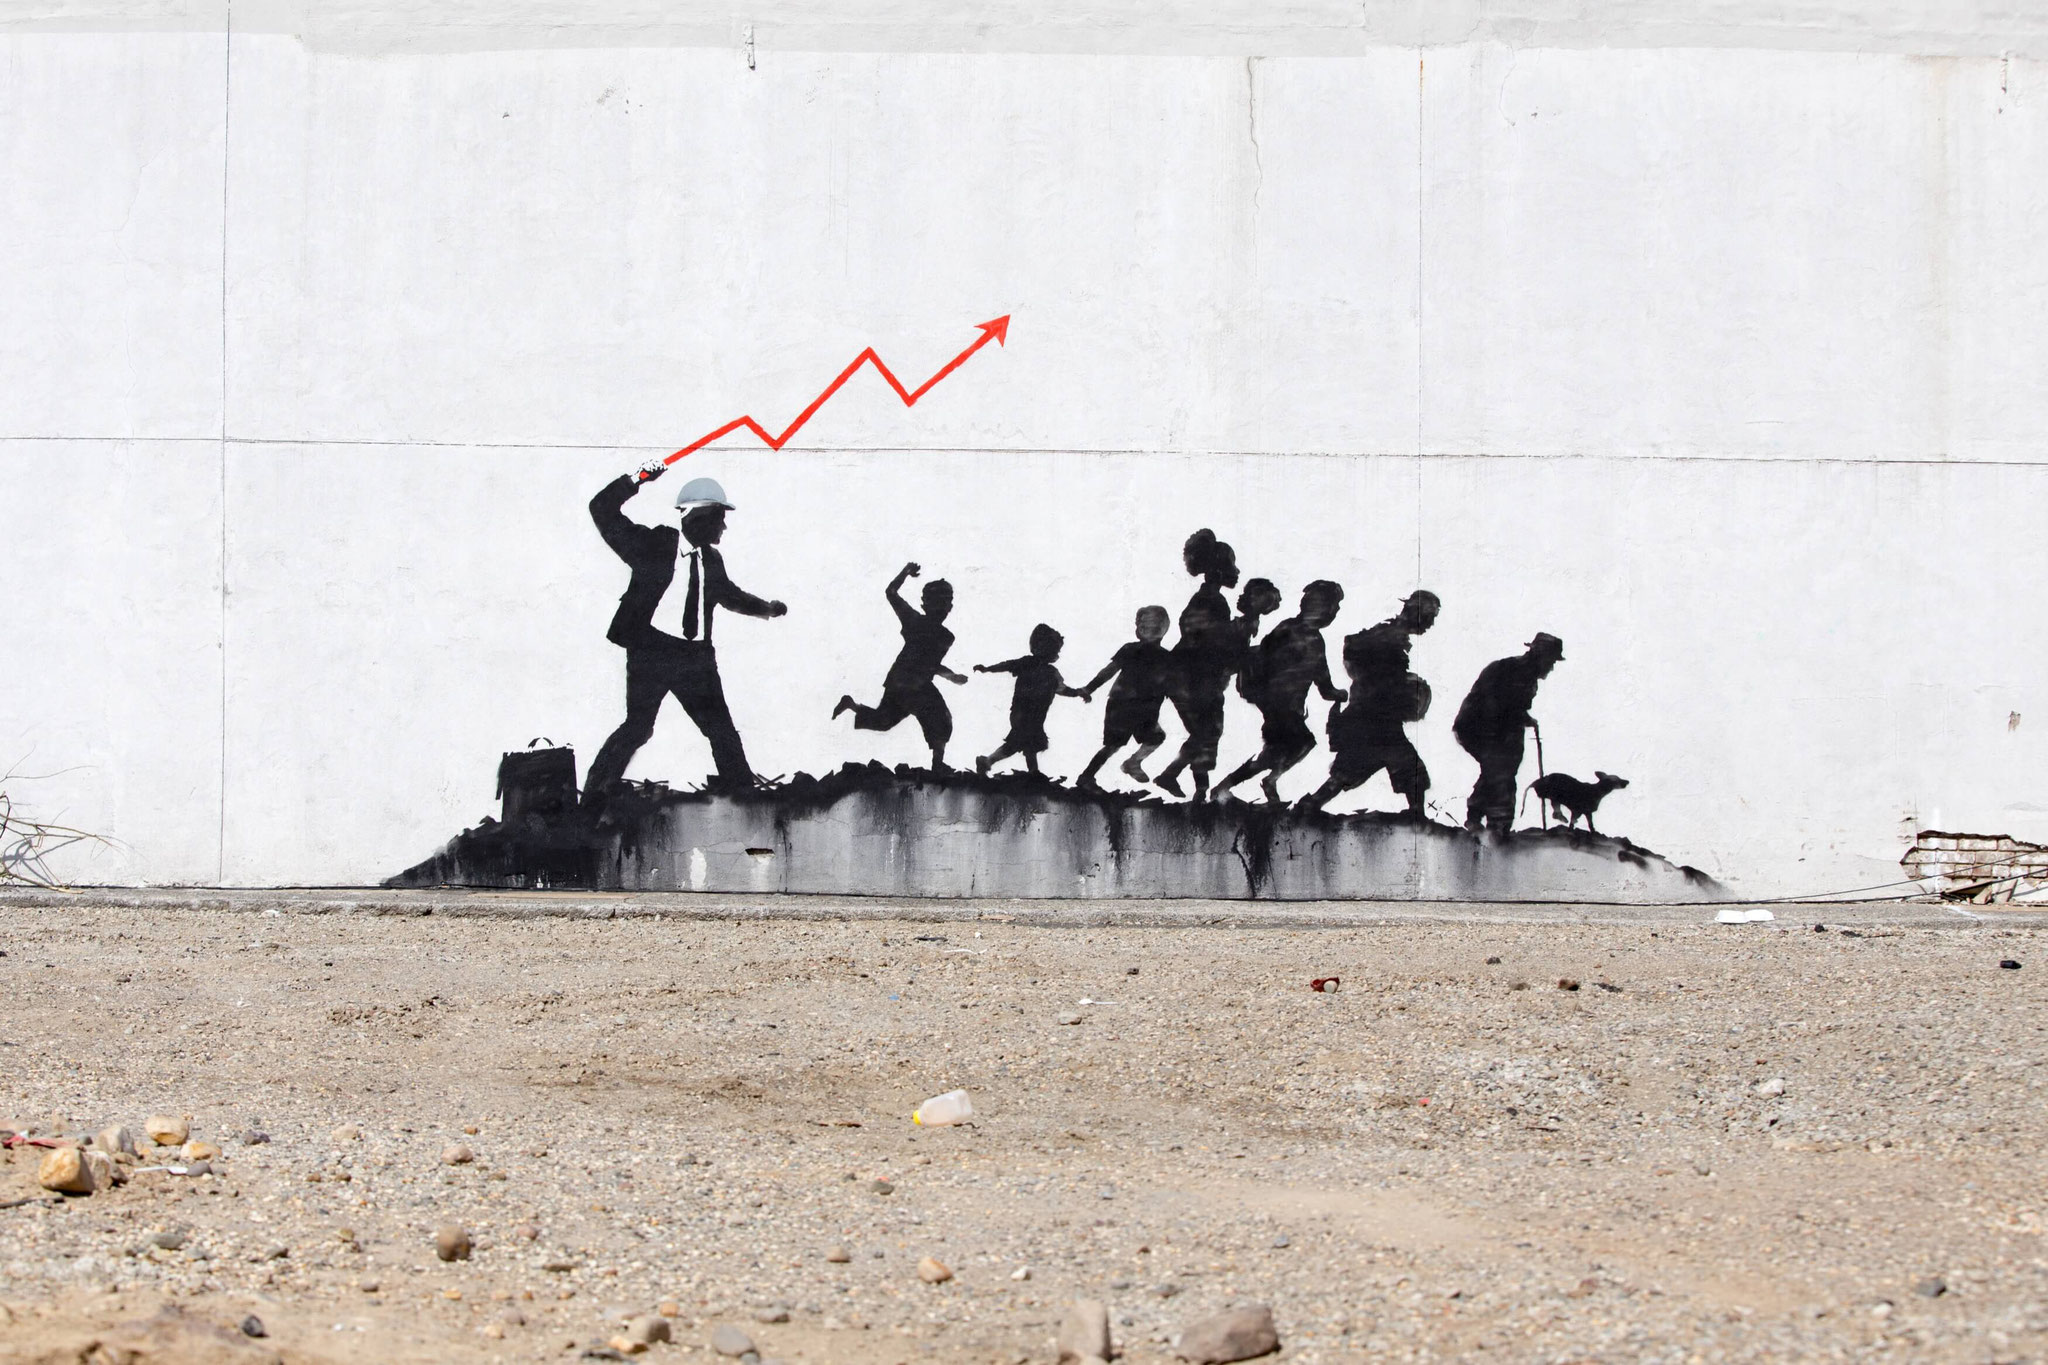 best-of-street-art-2018-banksy-chomage-croissance-denonciation.jpg